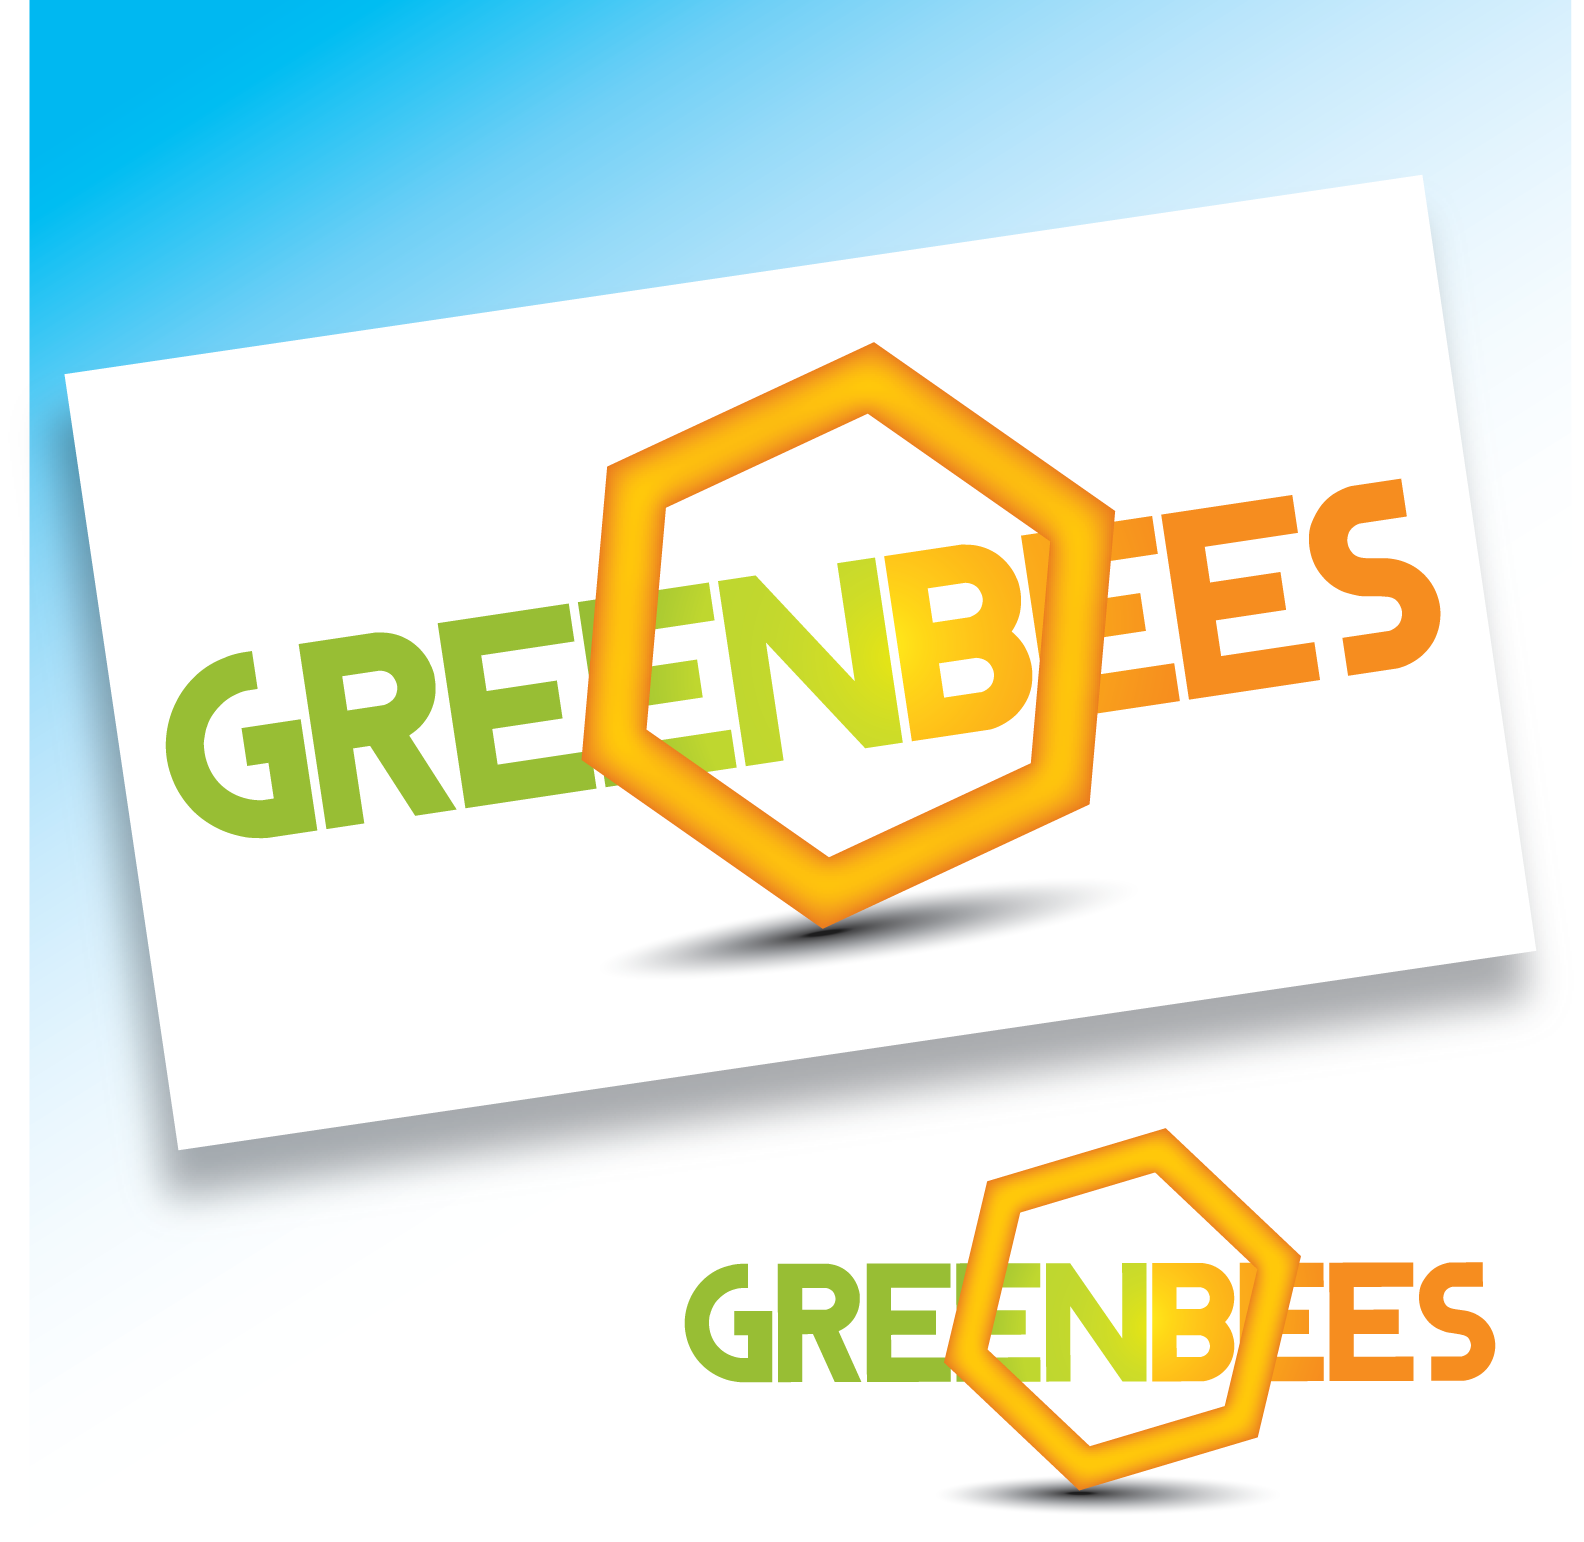 Logo Design by Teresa Abney - Entry No. 172 in the Logo Design Contest Greenbees Logo Design.